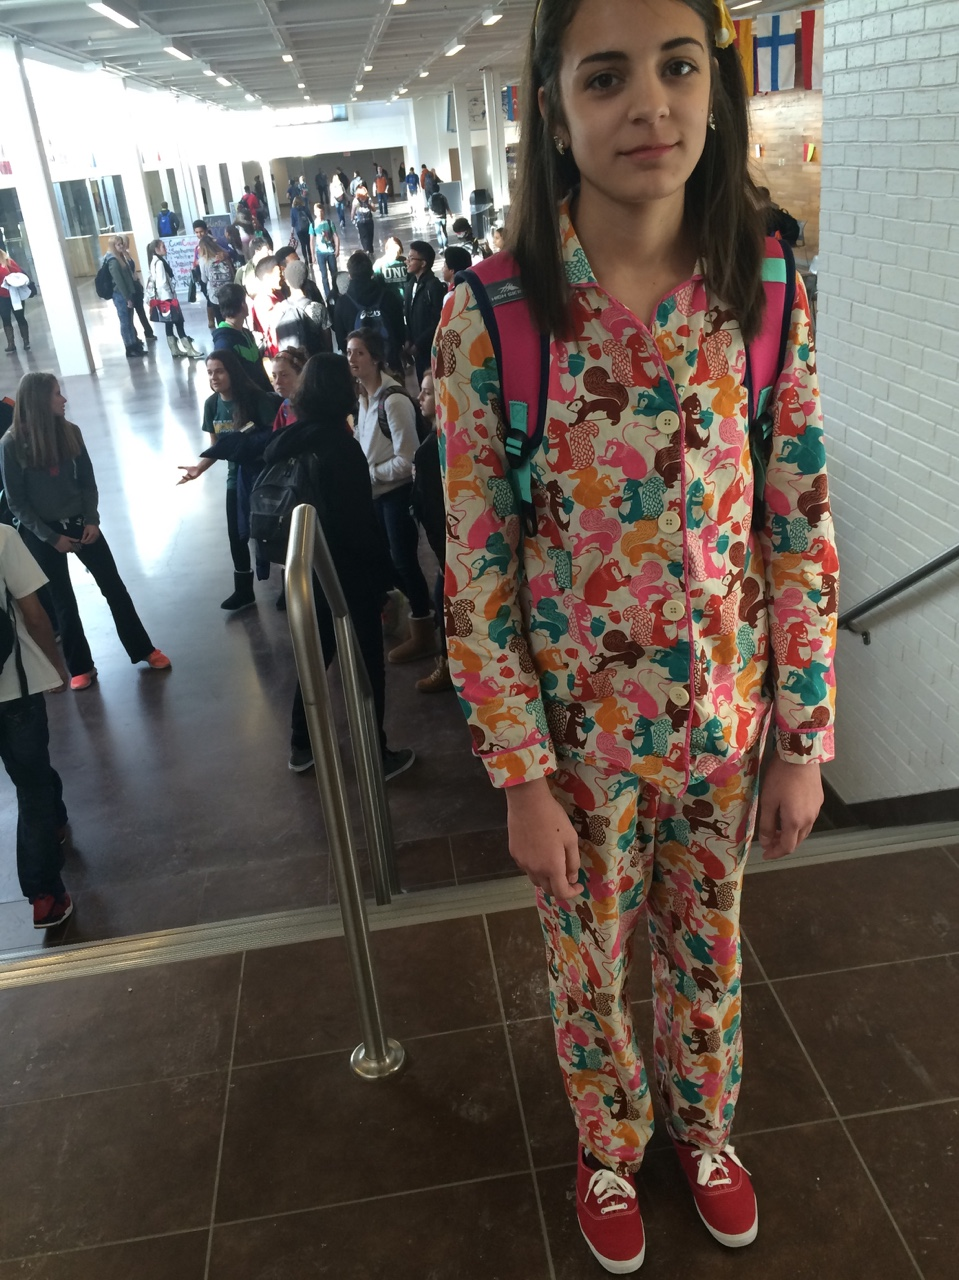 When it's pajama day and no one participates except you. (via drinkingmaplelattes)